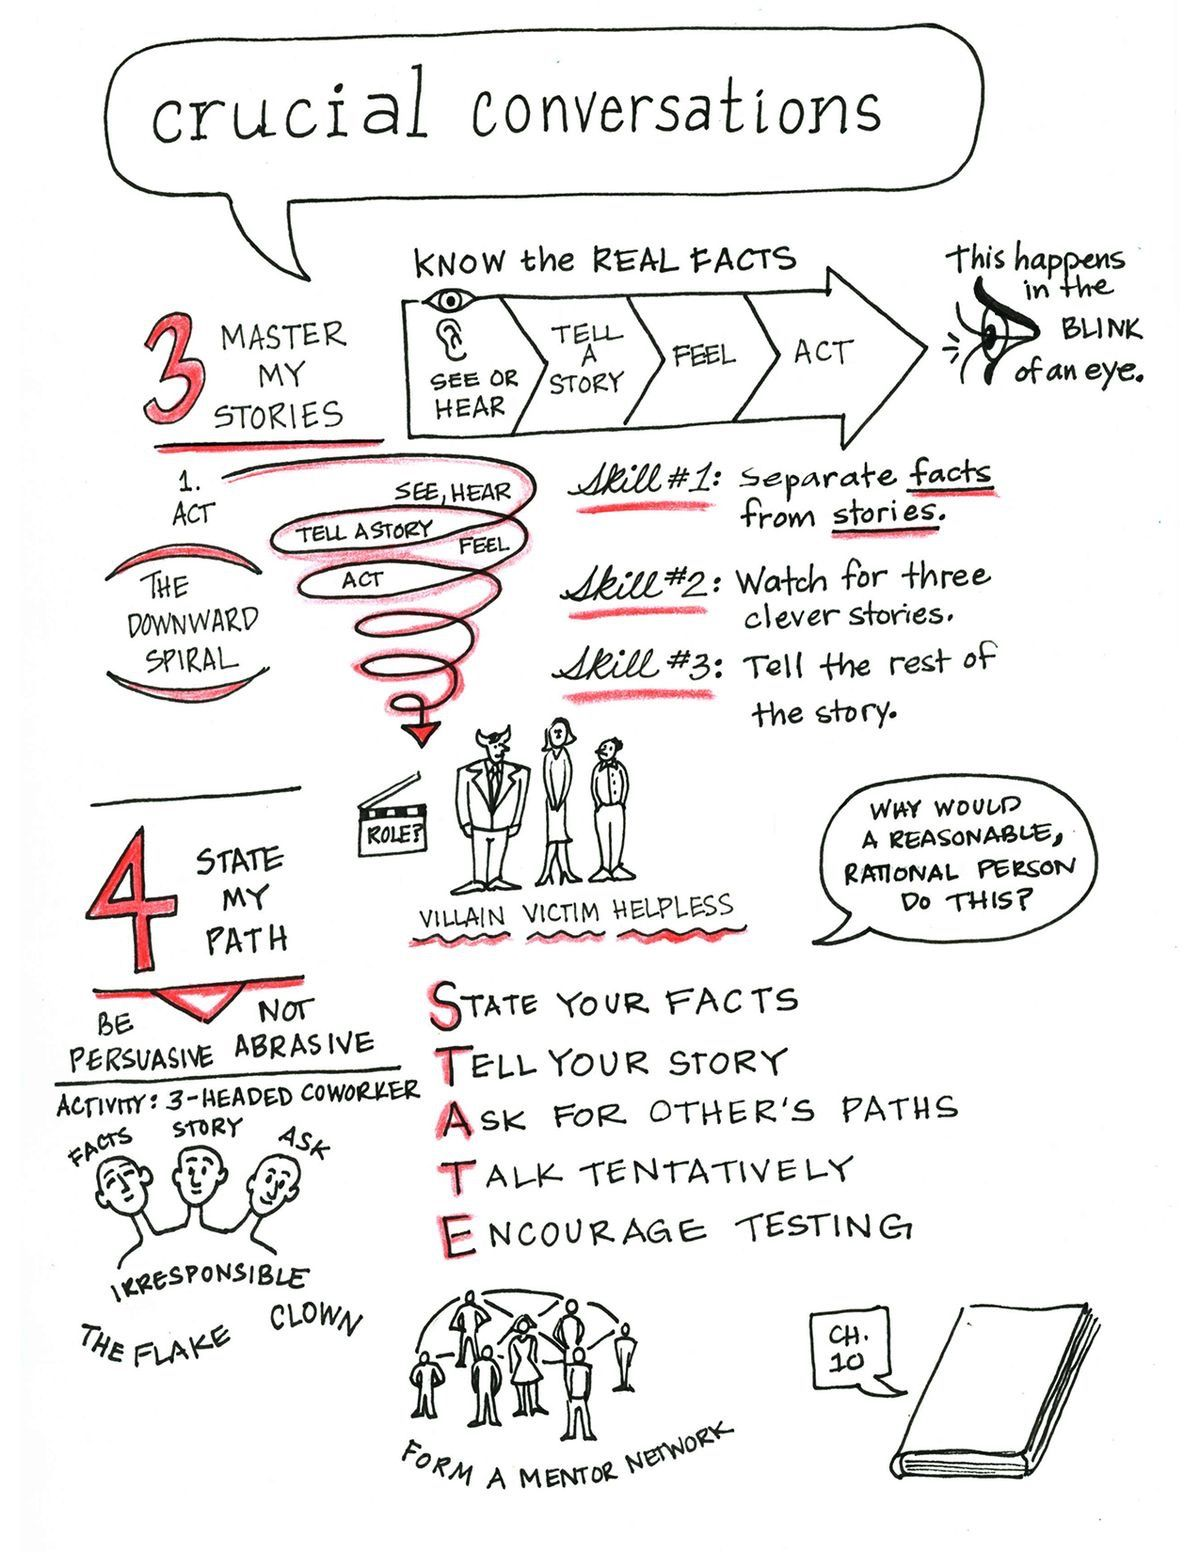 Pin By Mtahirumer On Creative Ideas Crucial Conversations Sketch Notes Change Management